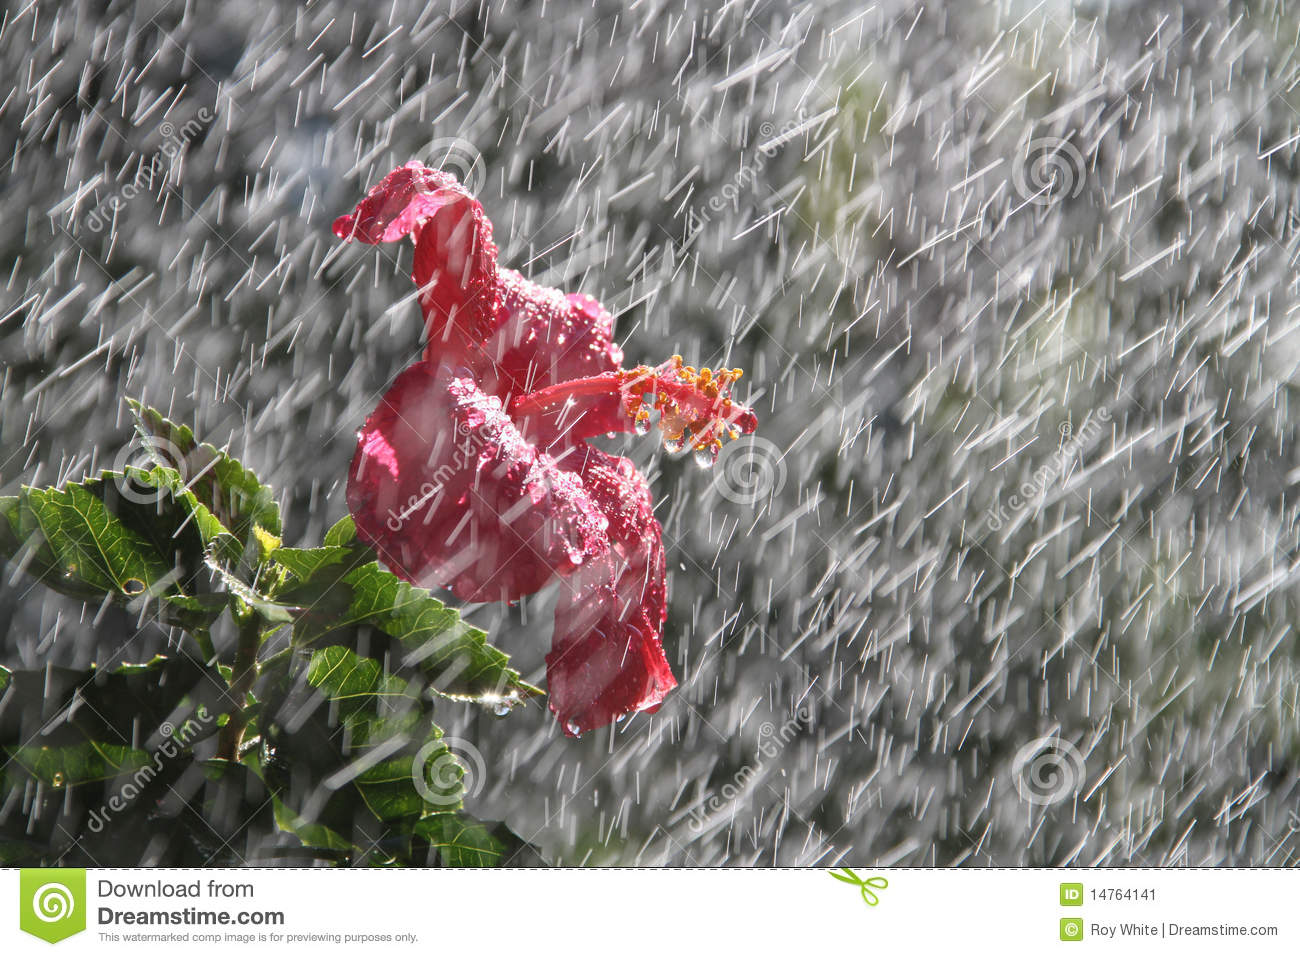 Hibiscus Flower With Leaves Rain Flower Stock Image. Image Of Life, Rain, Storm